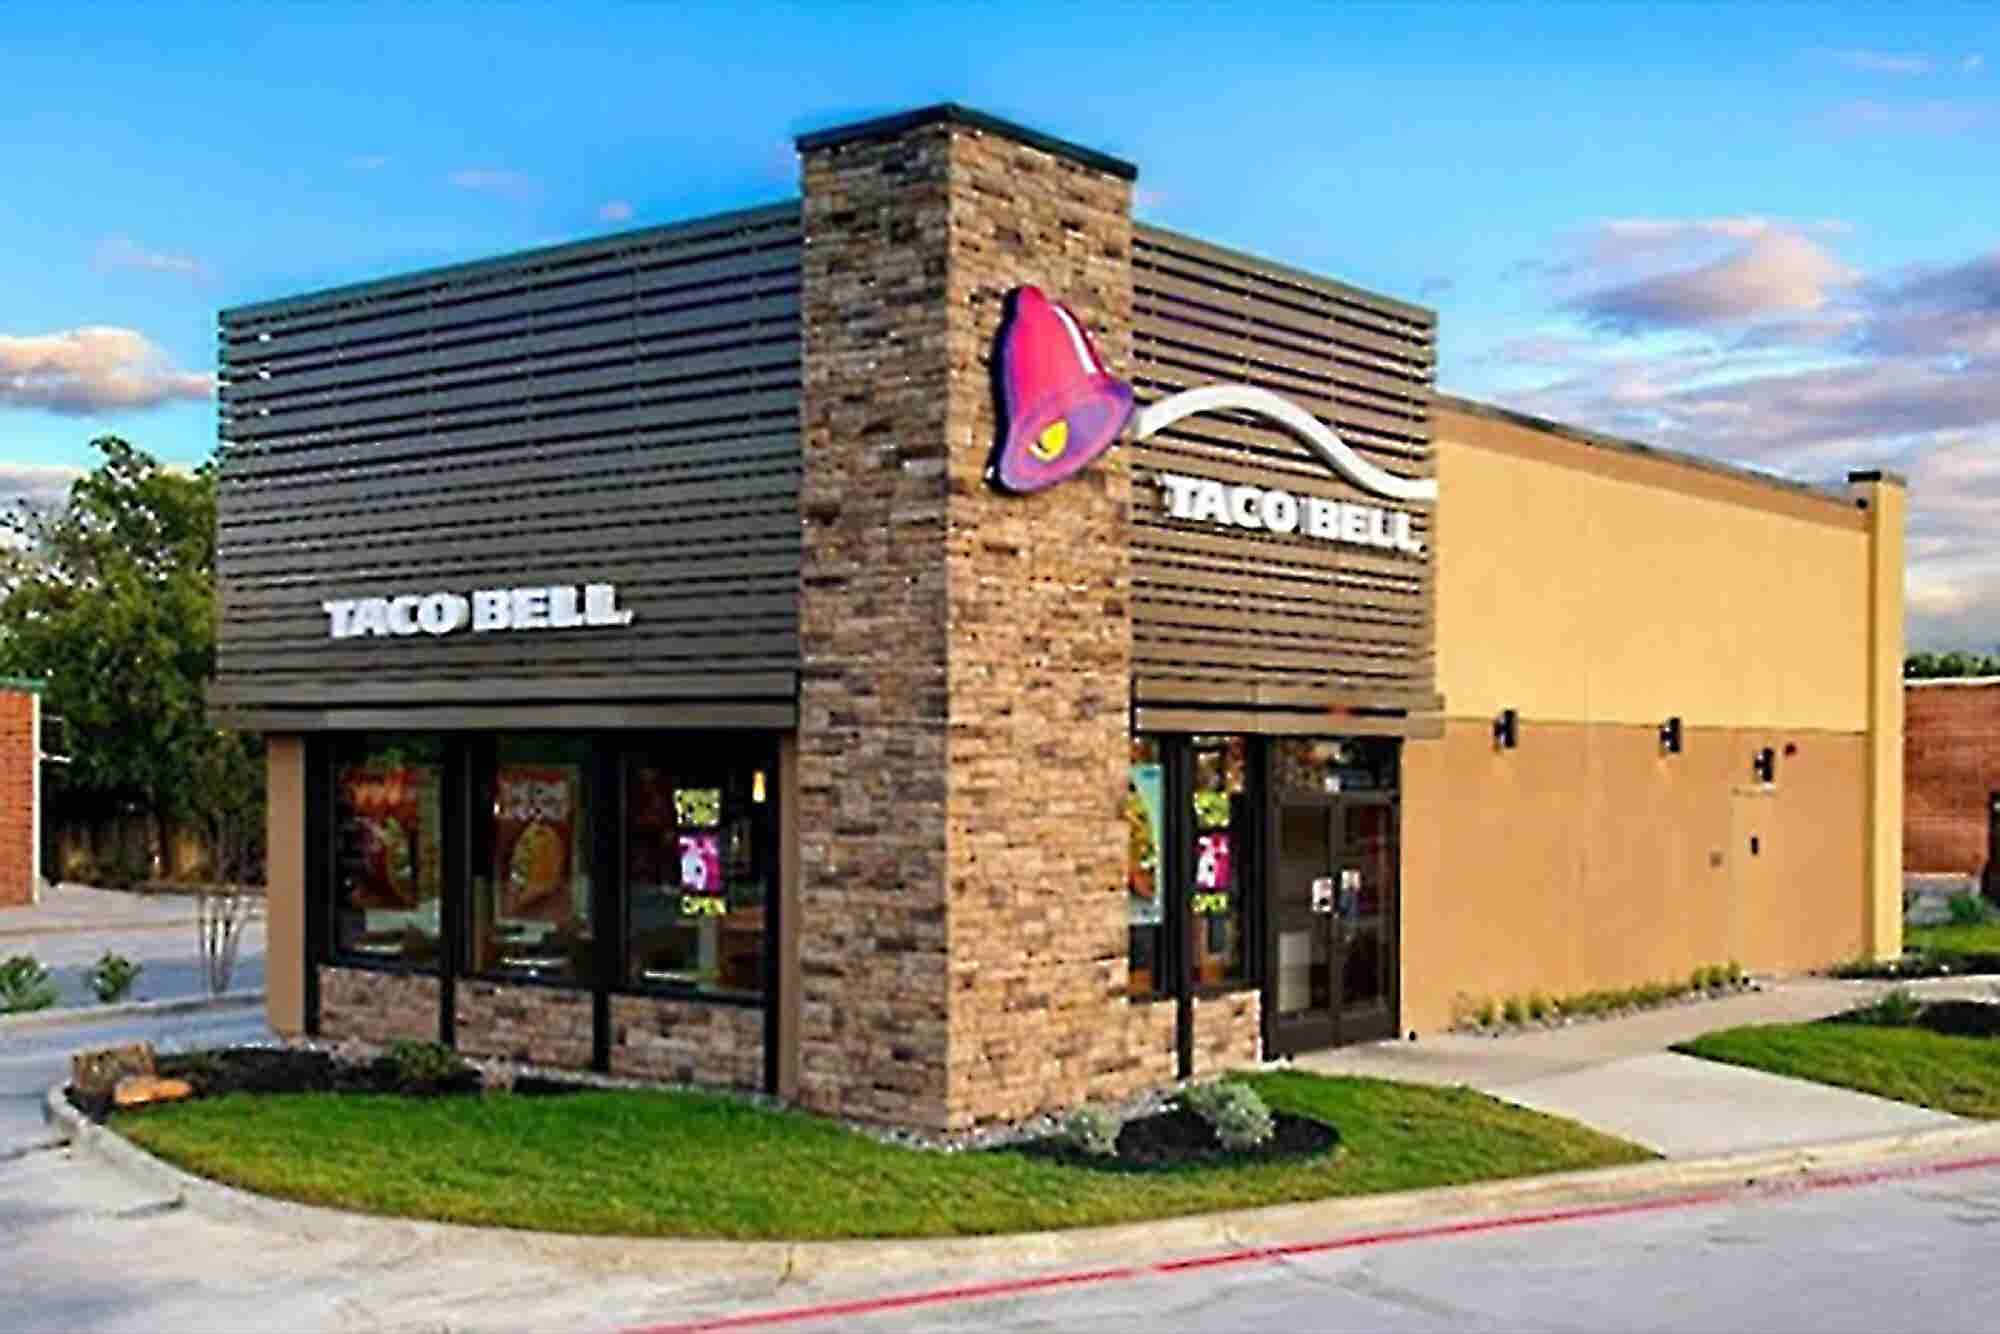 Potential Franchisees, Take Note: Taco Bell Hopes to Open 2,000 U.S. Restaurants by 2023